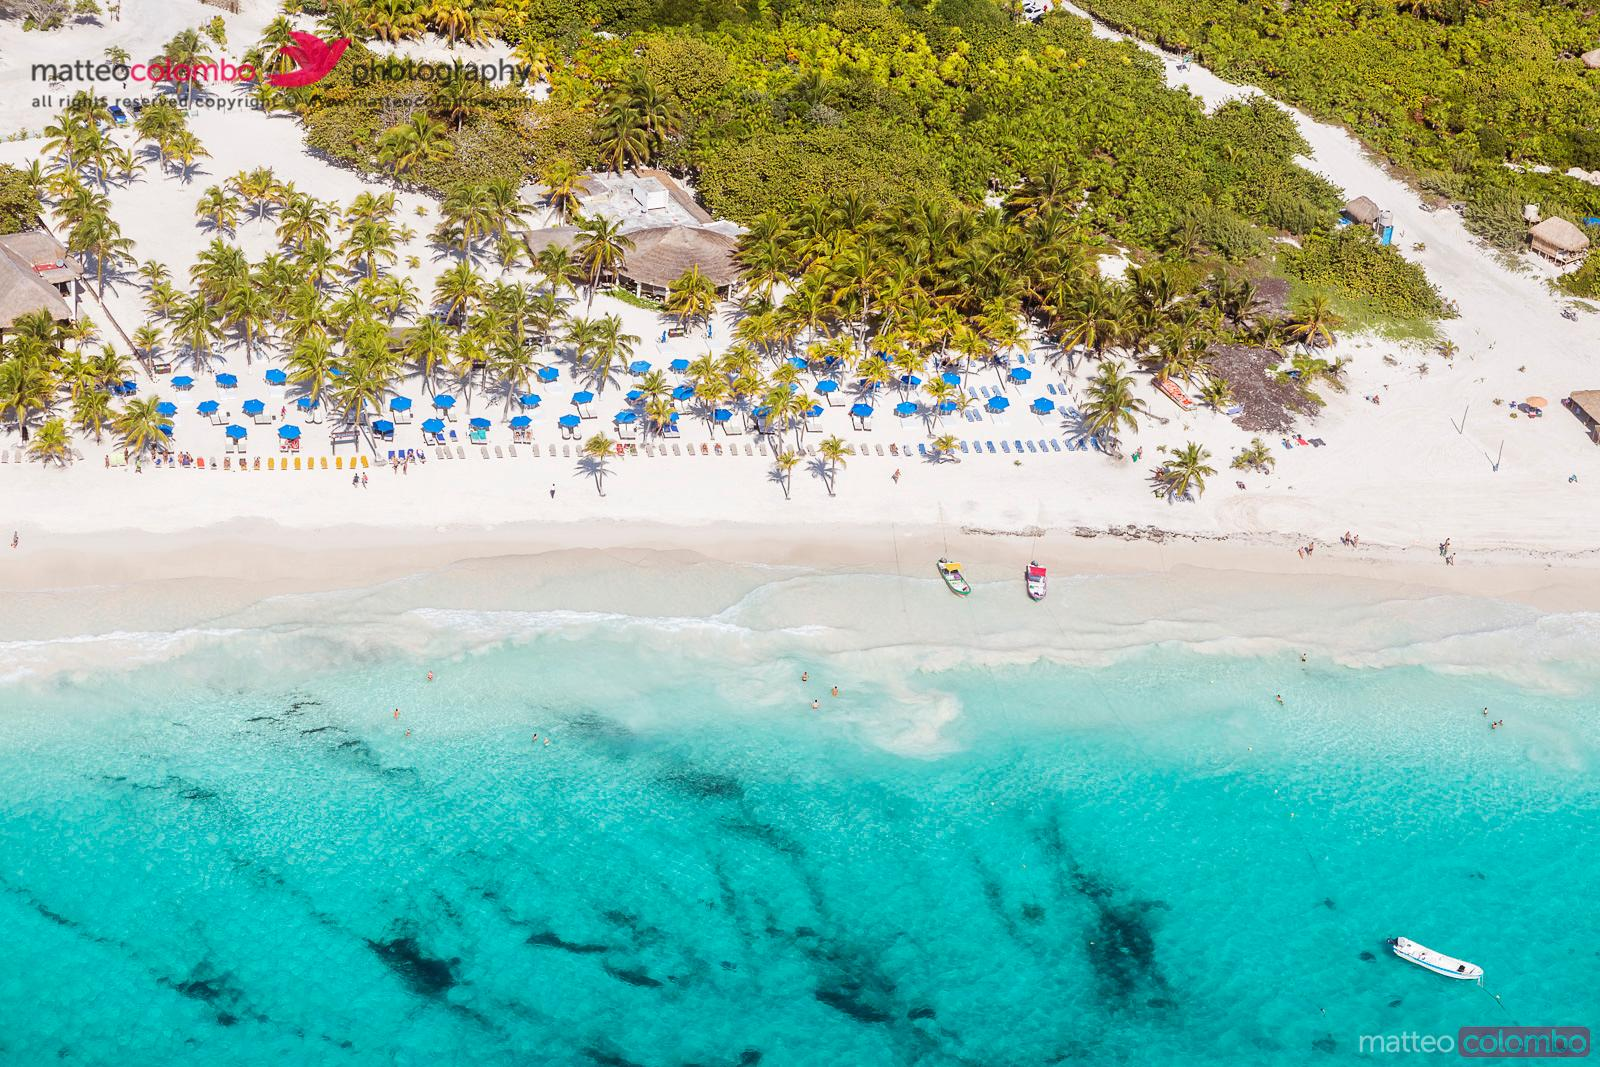 Aerial view of tropical beach near Cancun, Mexico